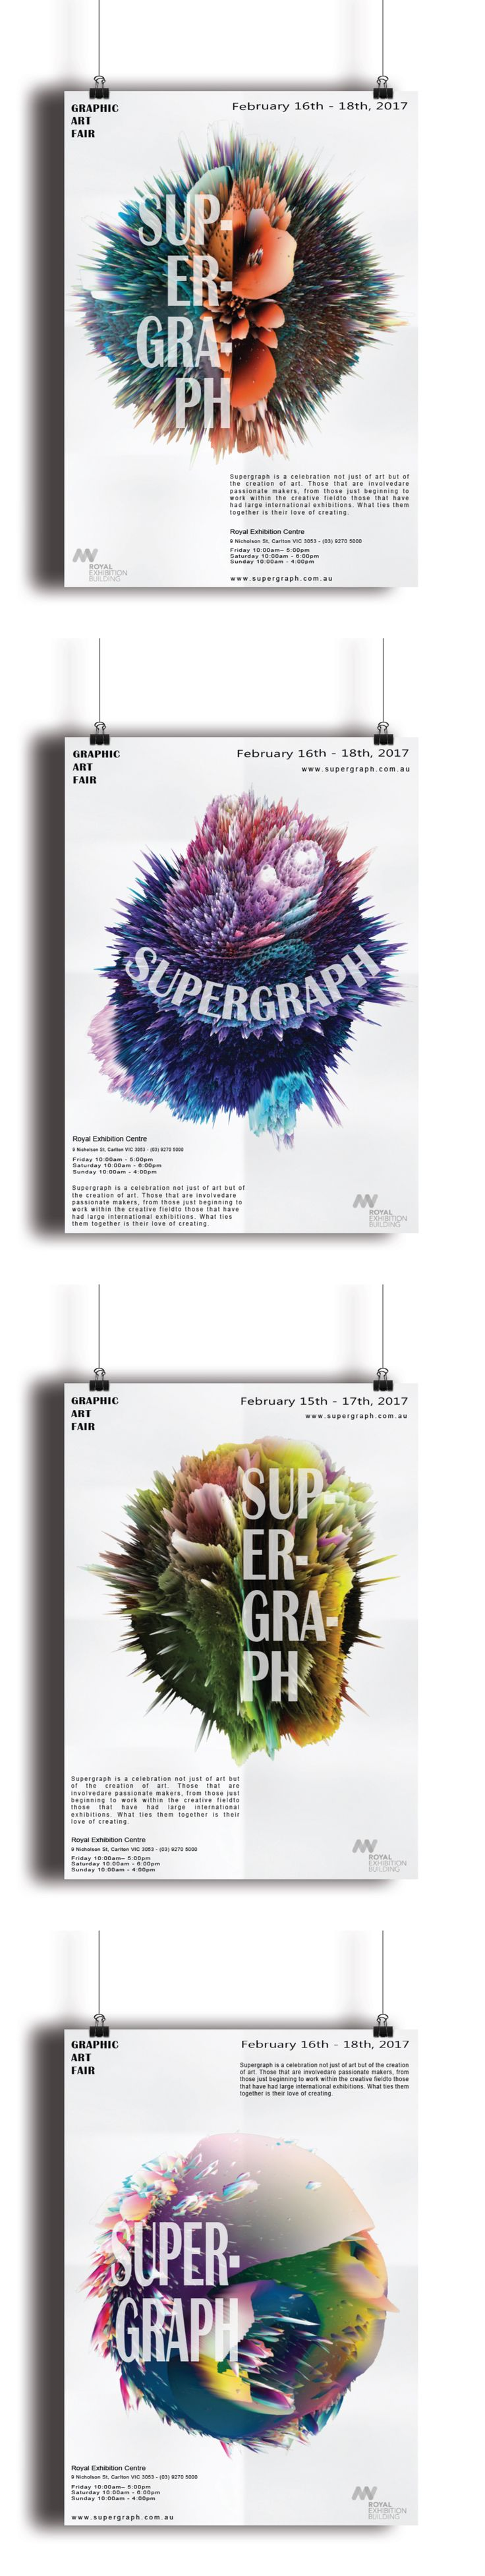 Supergraph promo poster concept. www.leahcussencreative.com #supergraph #graphicdesign #poster #promotion #lccreative